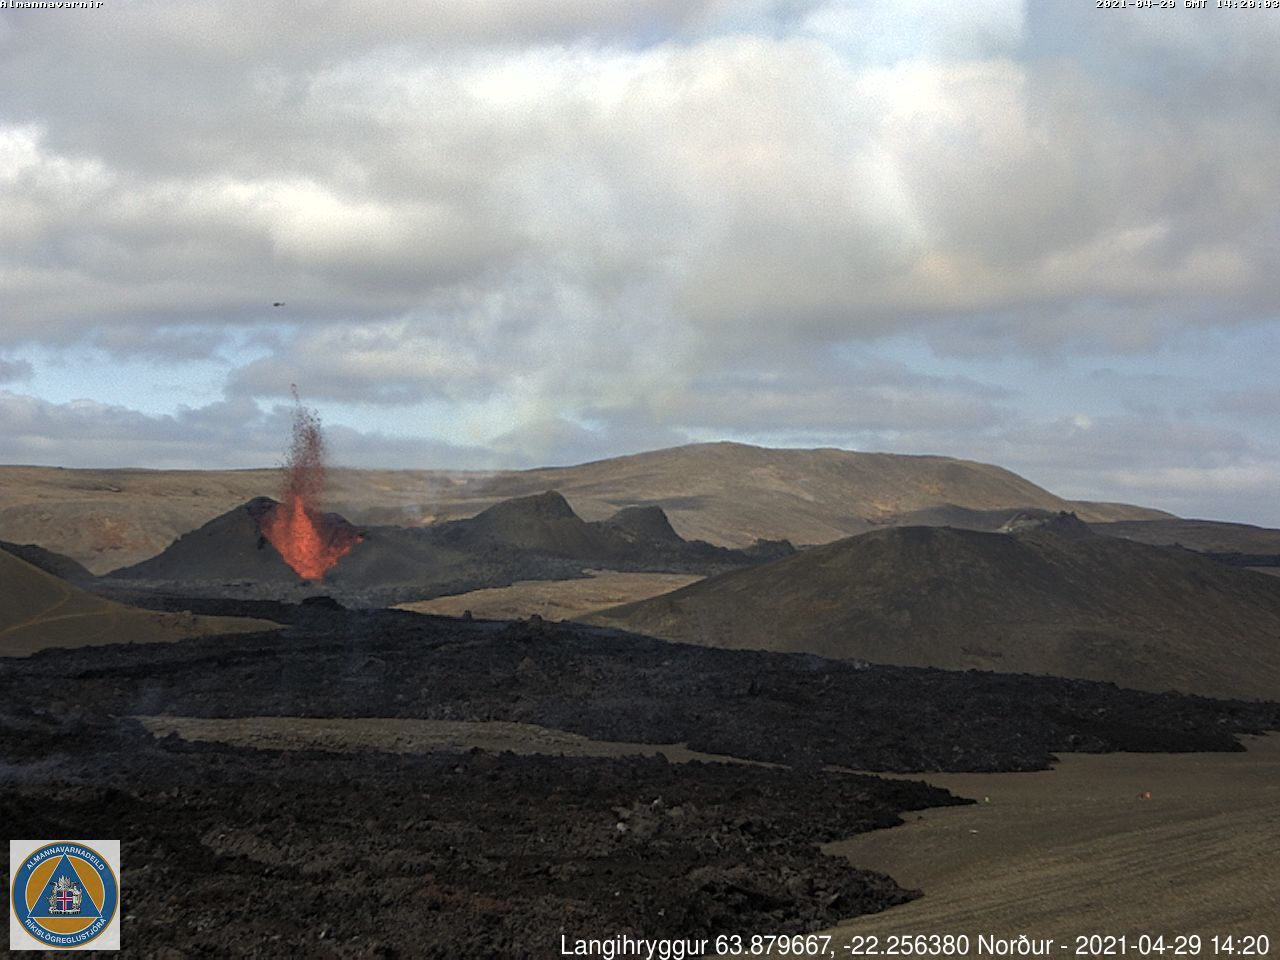 The eruptive site respectively at 2:20 p.m. with a large block of lava conveyed by the flow (under the crater), and at 4:40 p.m., with movement to the right of the image - webcam_langihryggurN_20210429